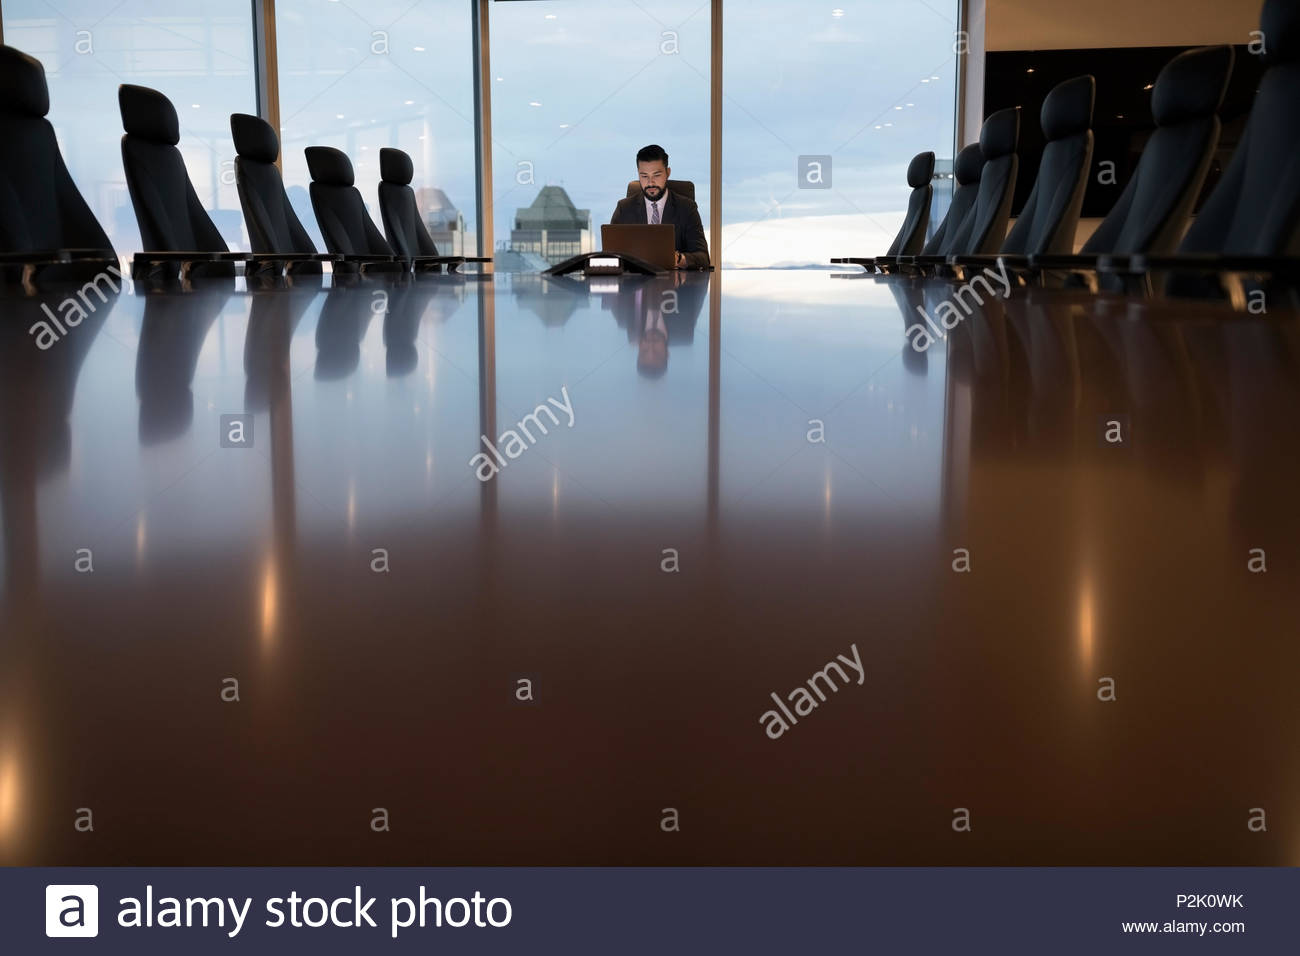 Dedicated businessman working late in boardroom - Stock Image